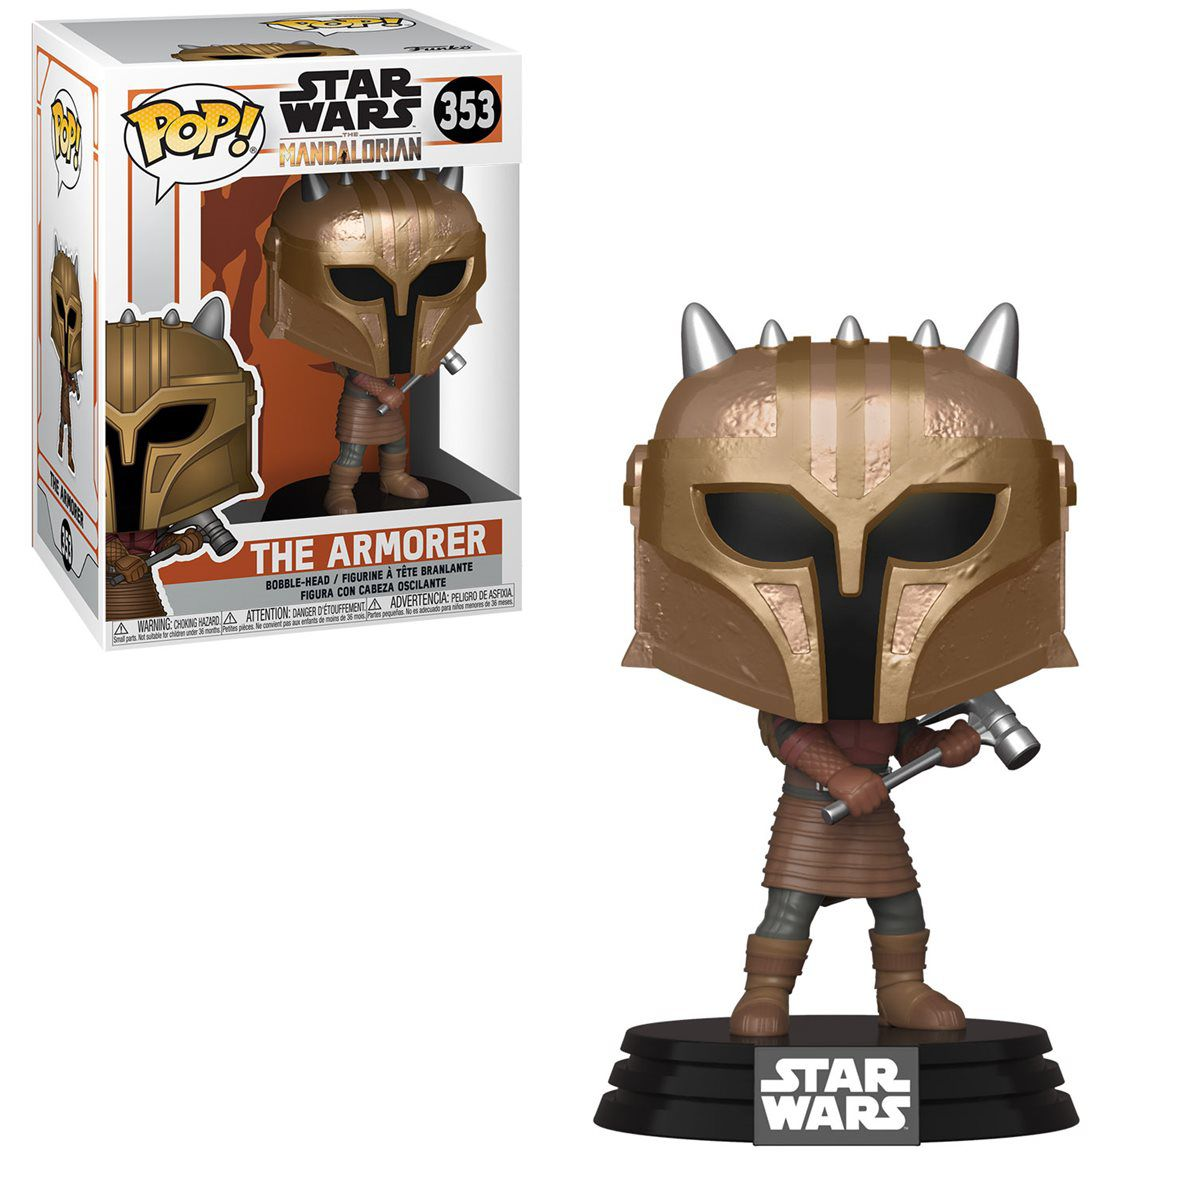 PRÉ VENDA: Funko Pop! The Armorer: The Mandalorian (Star Wars) Disney+ #353 - Funko